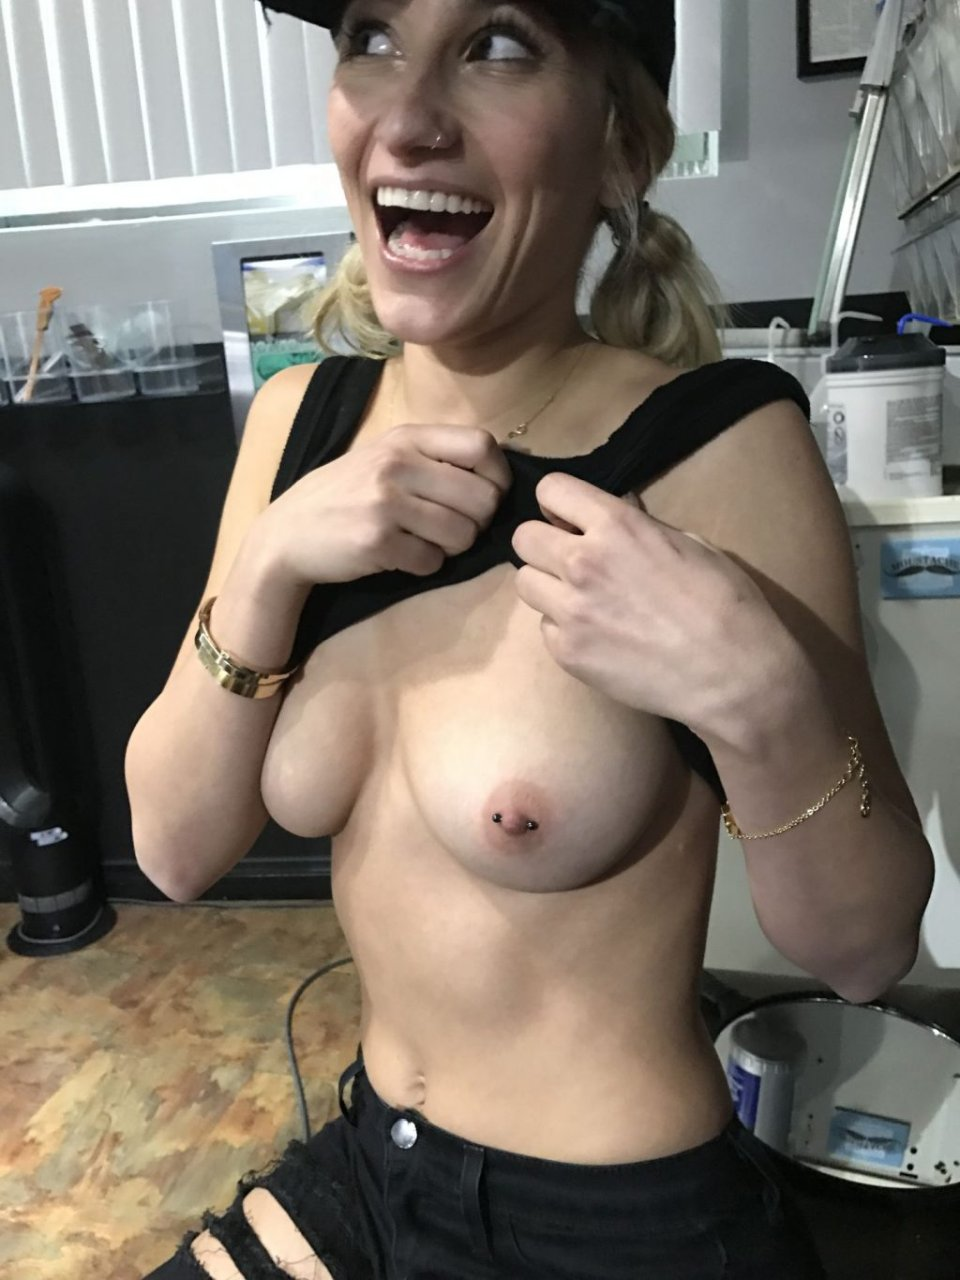 Lexy Panterra Nude Leaked The Fappening (5 Photos)